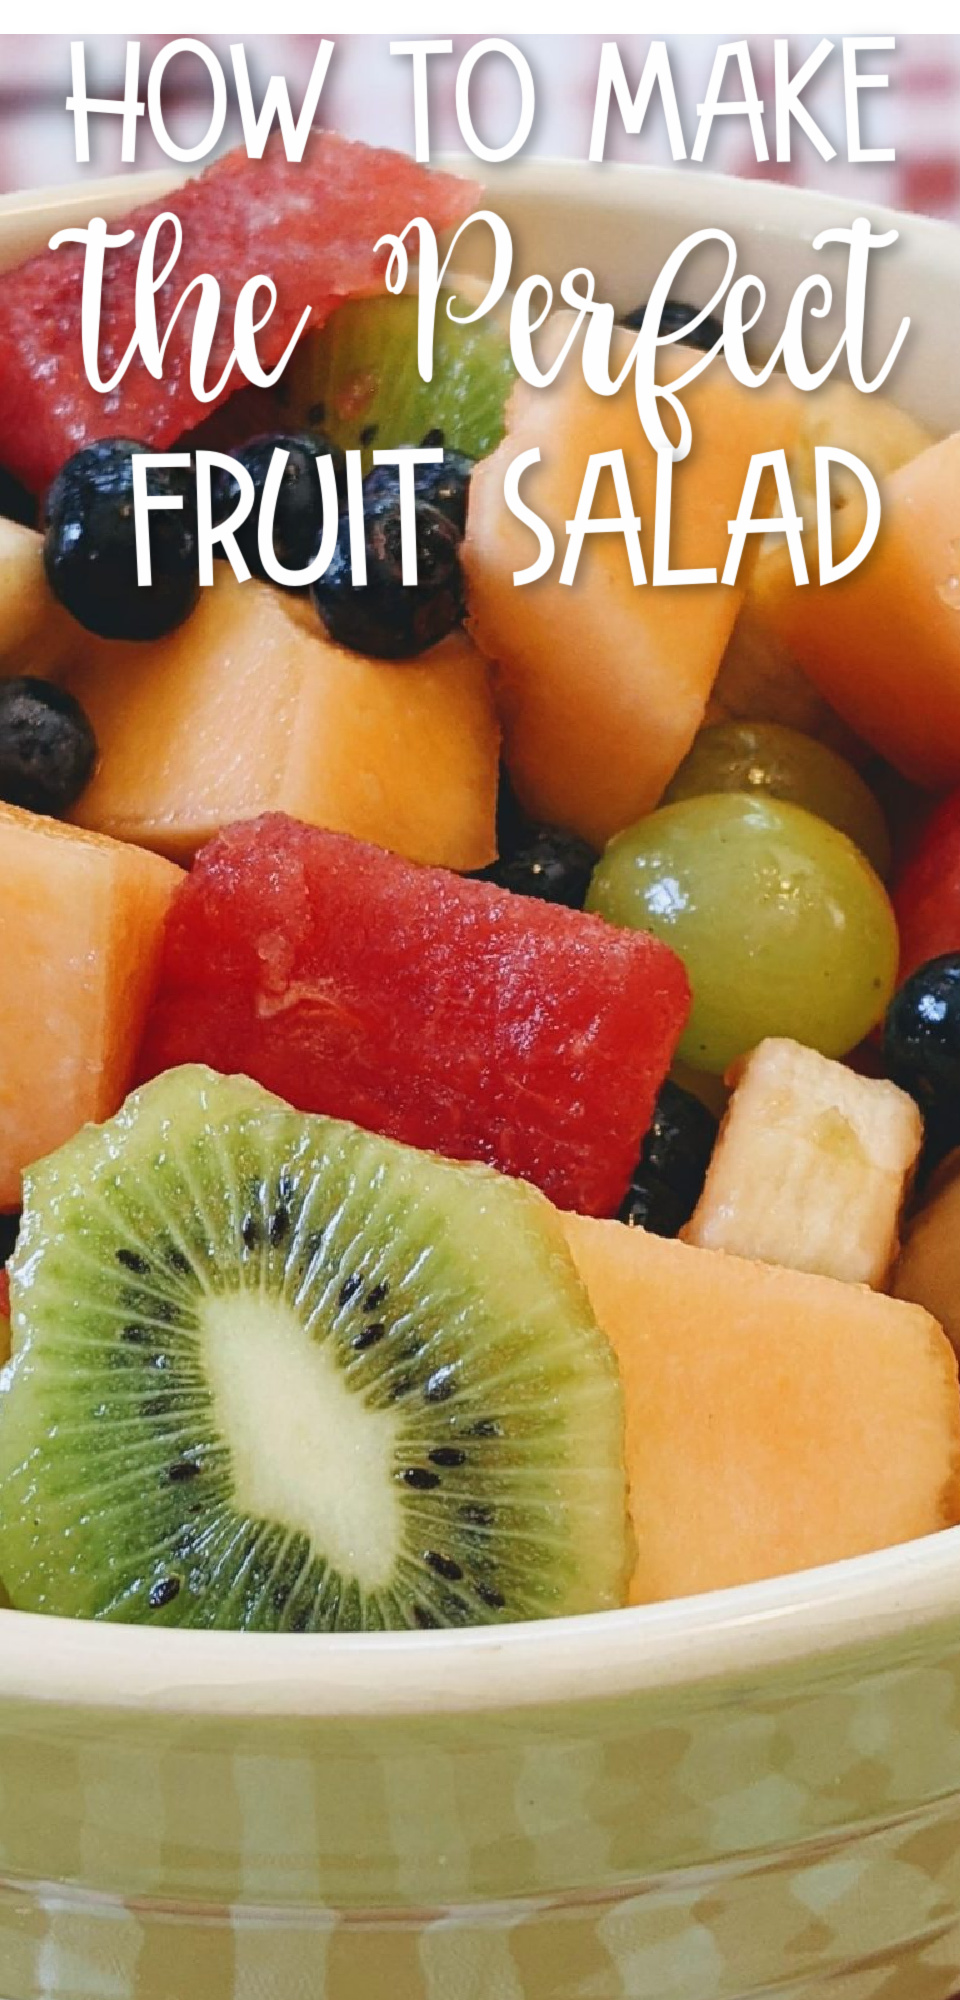 How to Make the Perfect Fruit Salad (And What Fruits to Choose) and delicious fruit dip recipes! via @simplysidedishes89